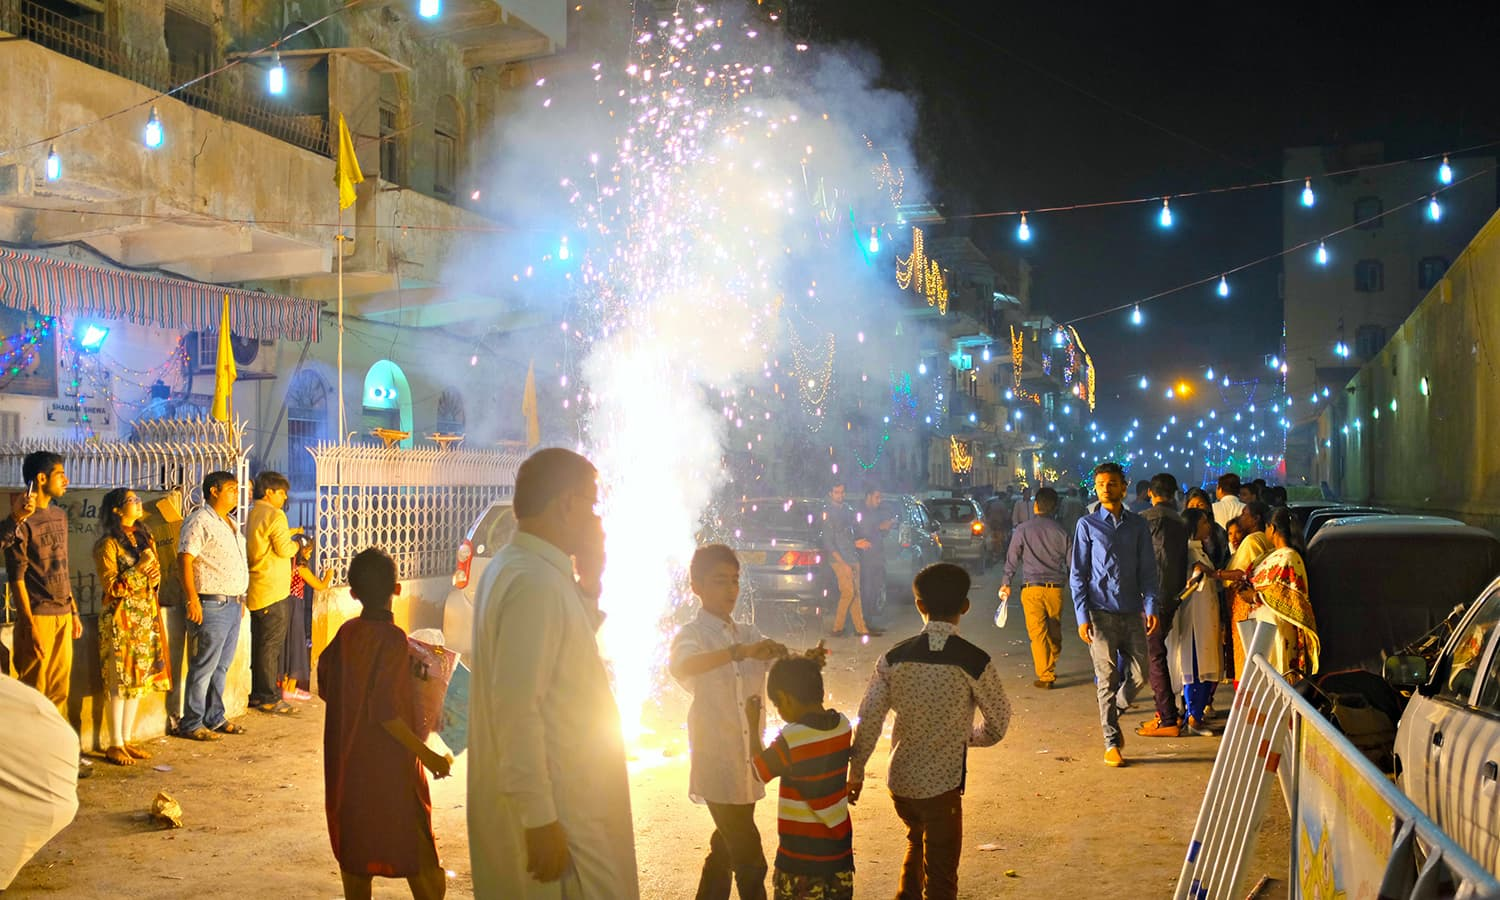 Firecrackers went off continuously as we briskly crossed the street.